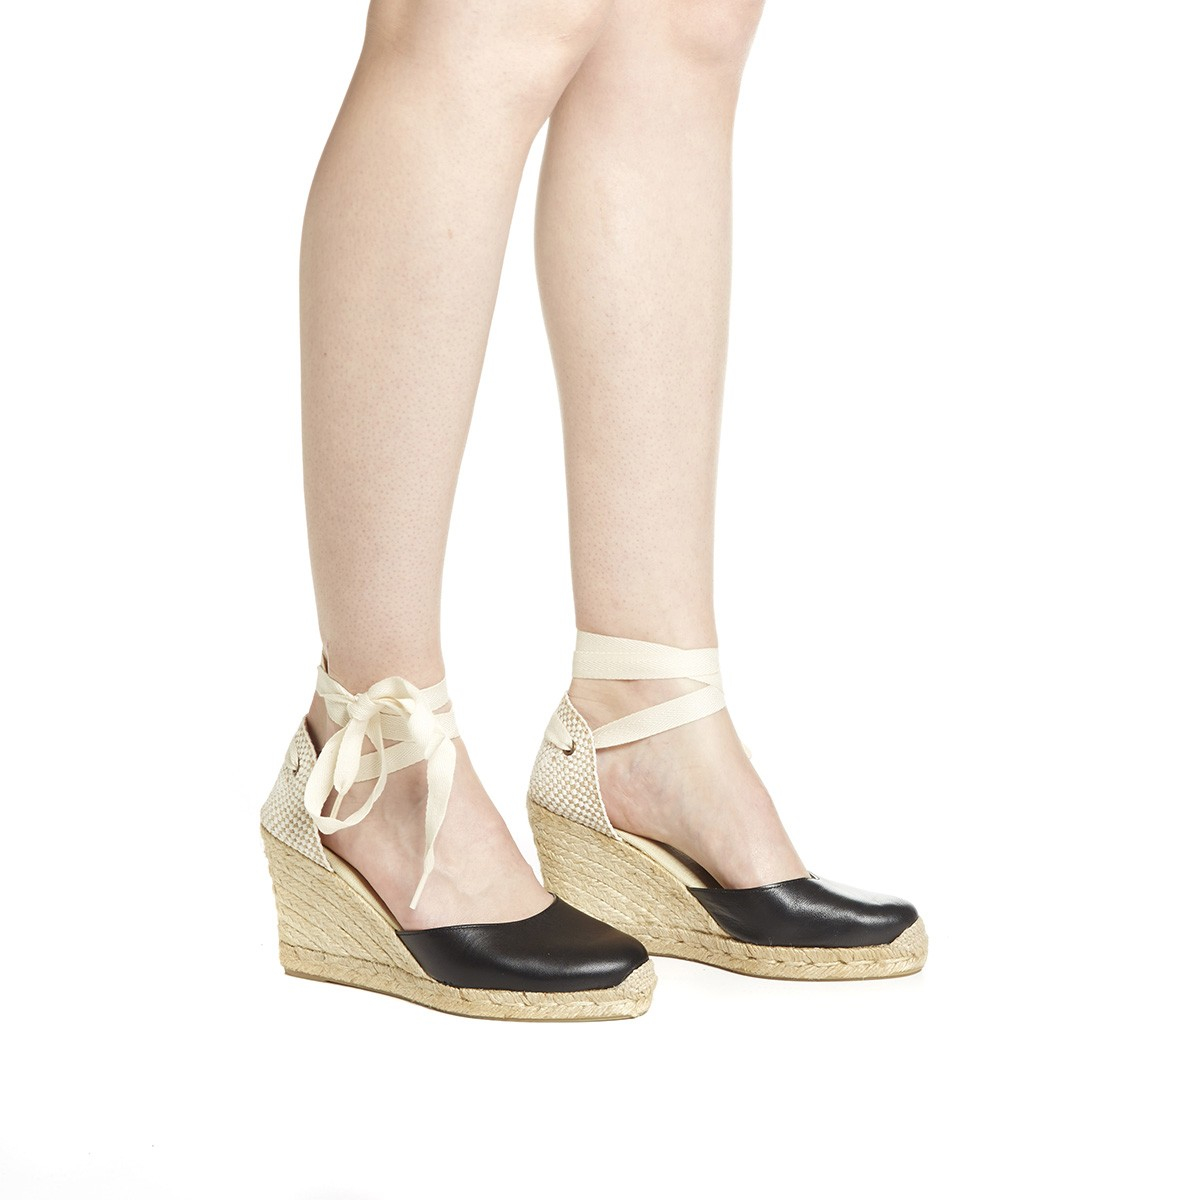 8f308d9785a Women's Black Tall Leather Wedge